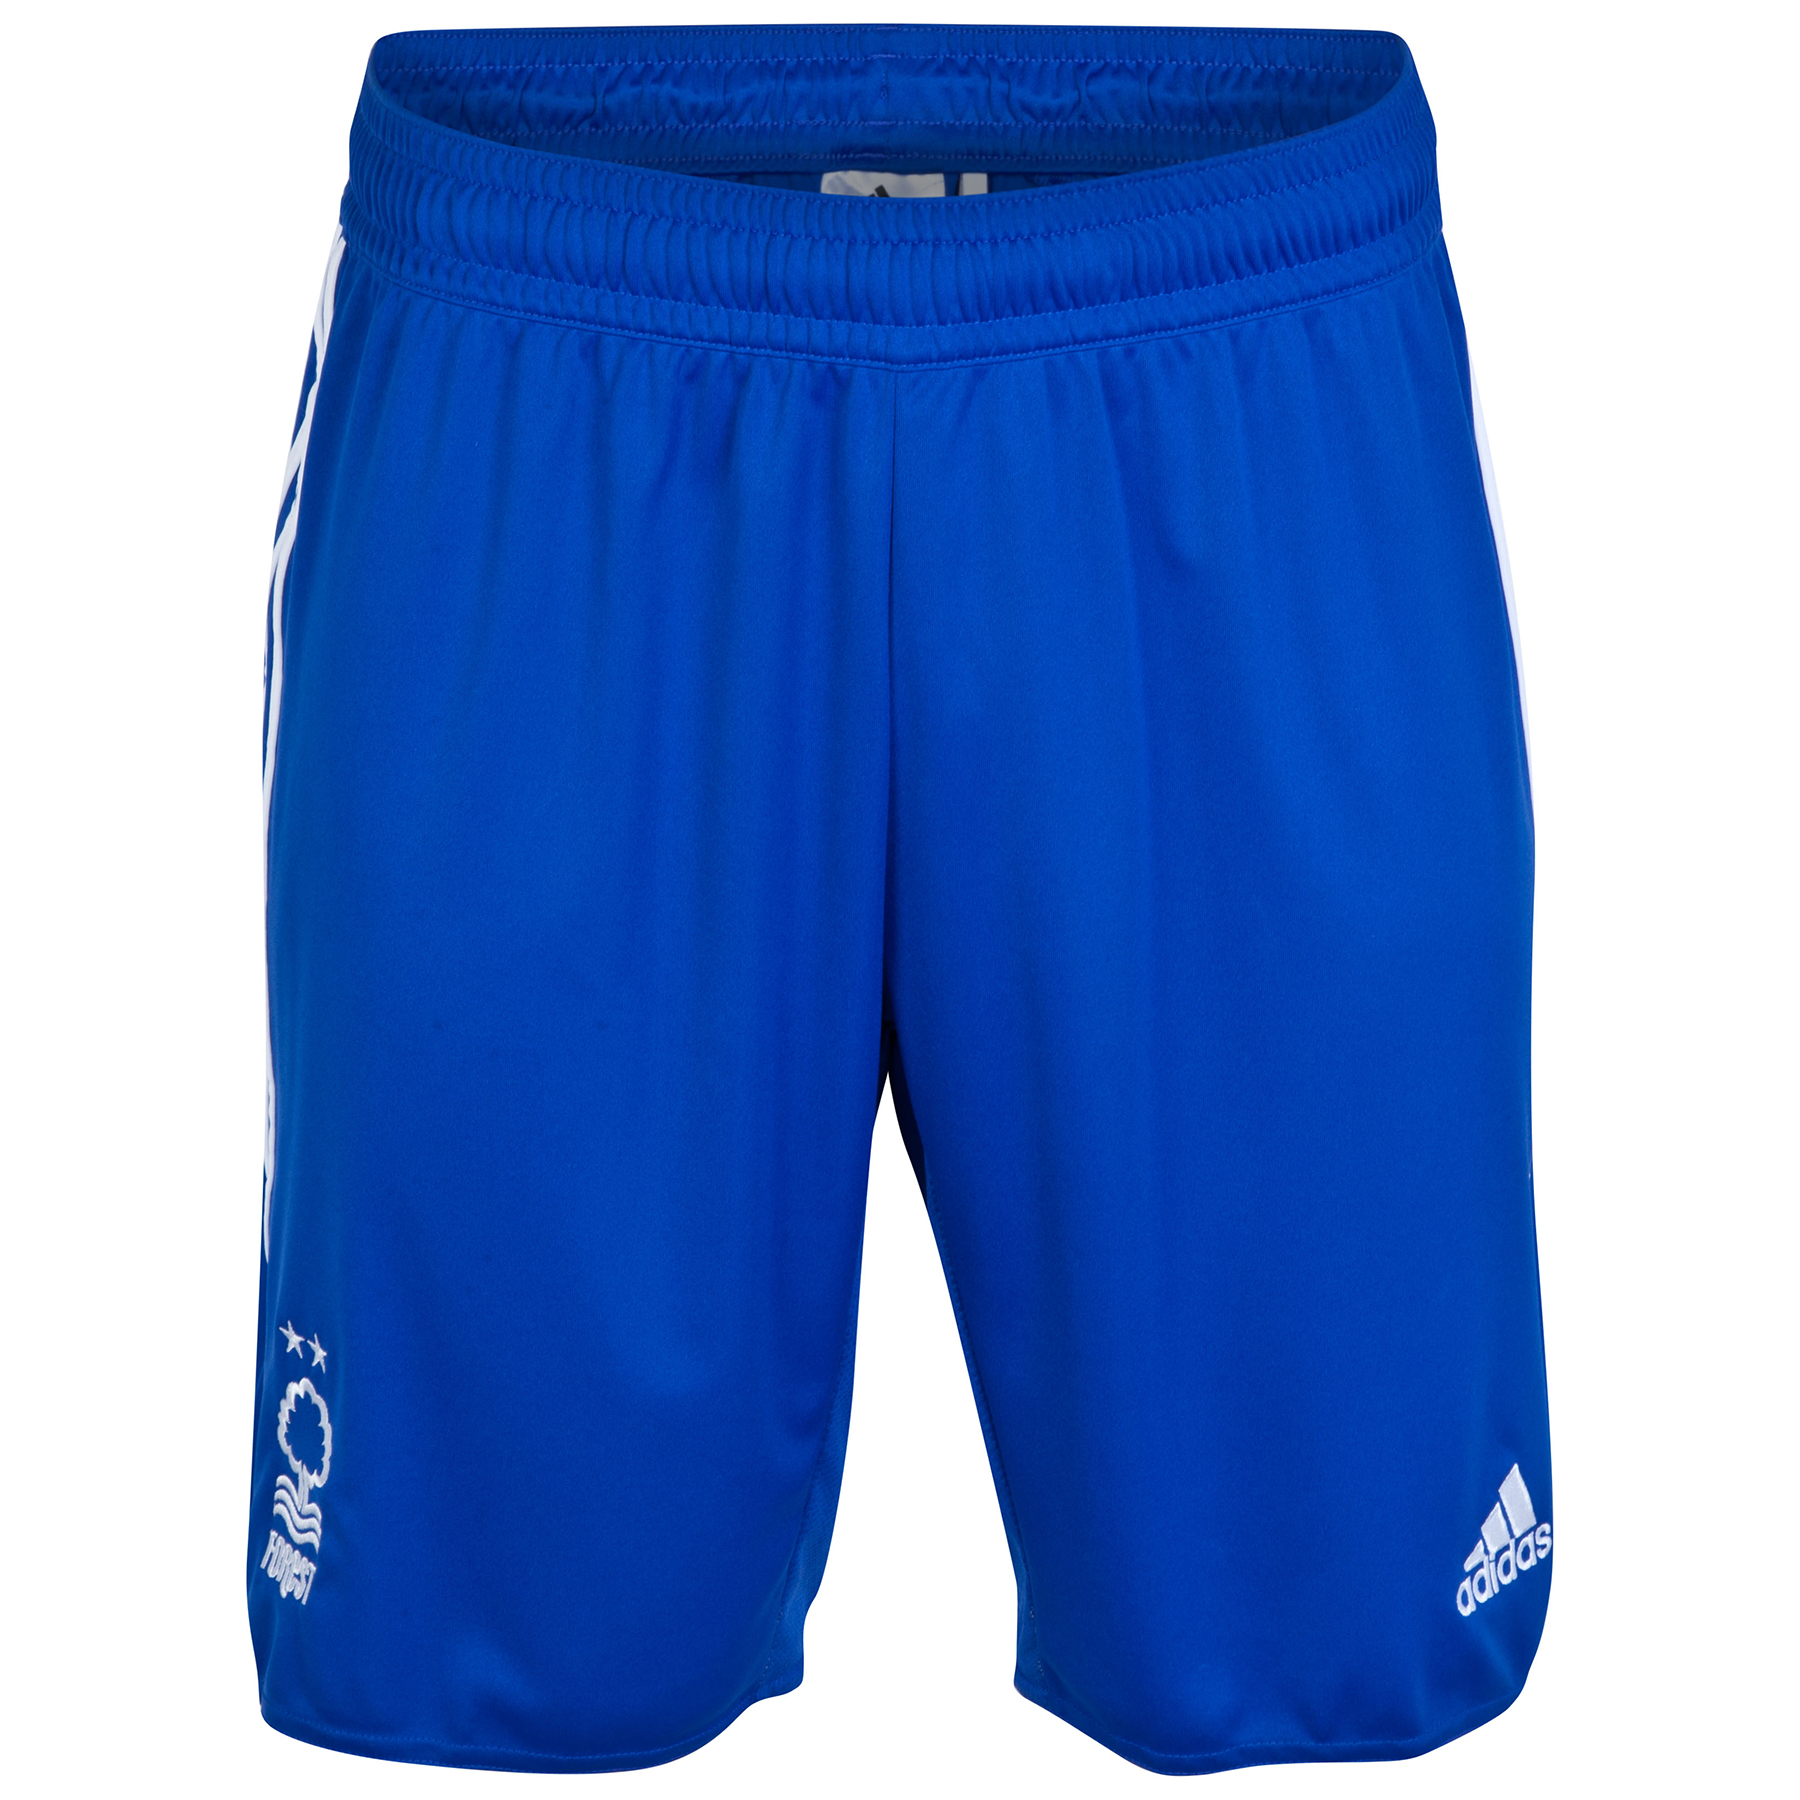 Nottingham Forest Limited Edition 3rd Third Short 2014/15 Blue